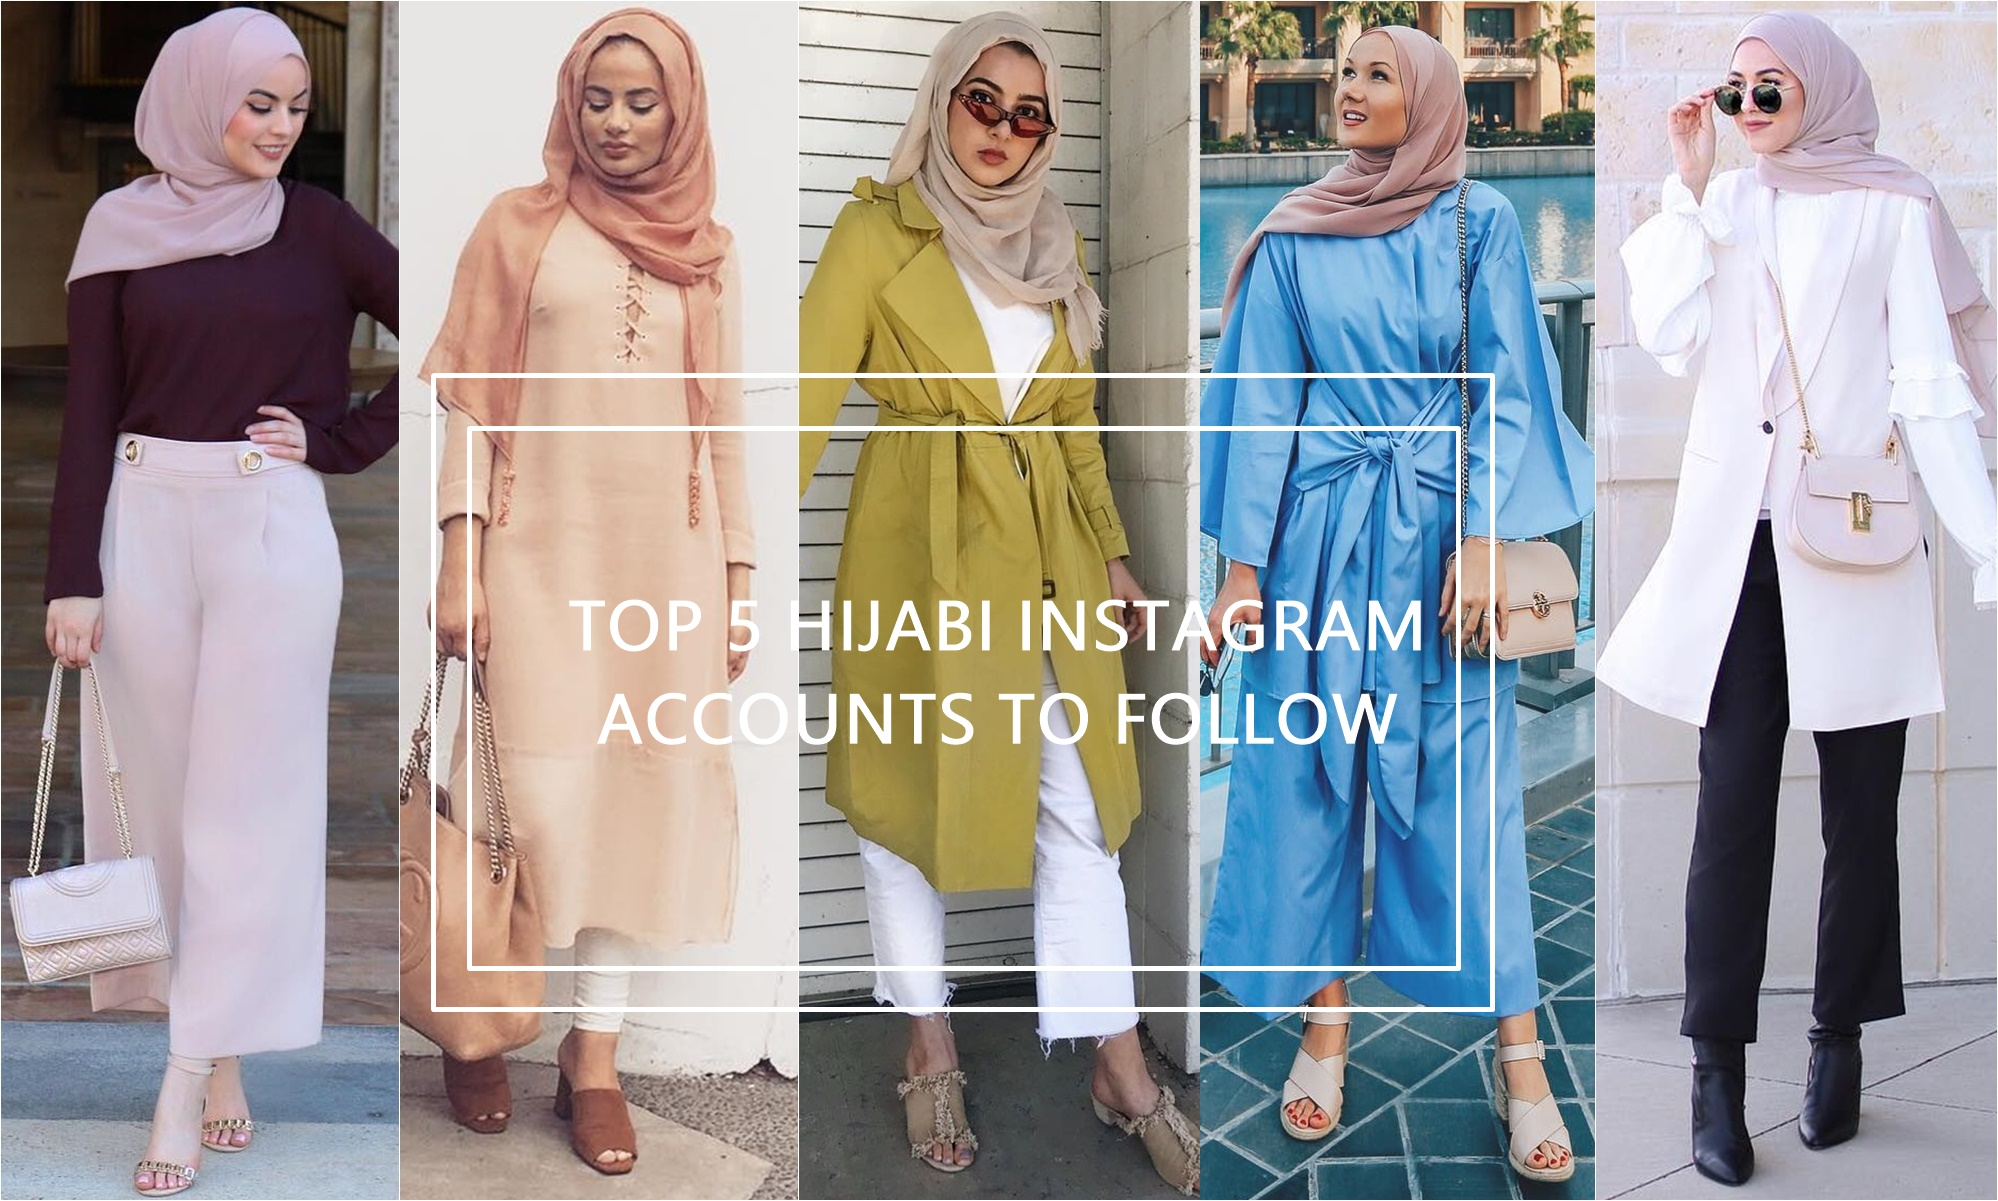 5 Hijabi Instagram Accounts To Follow Hijab Fashion